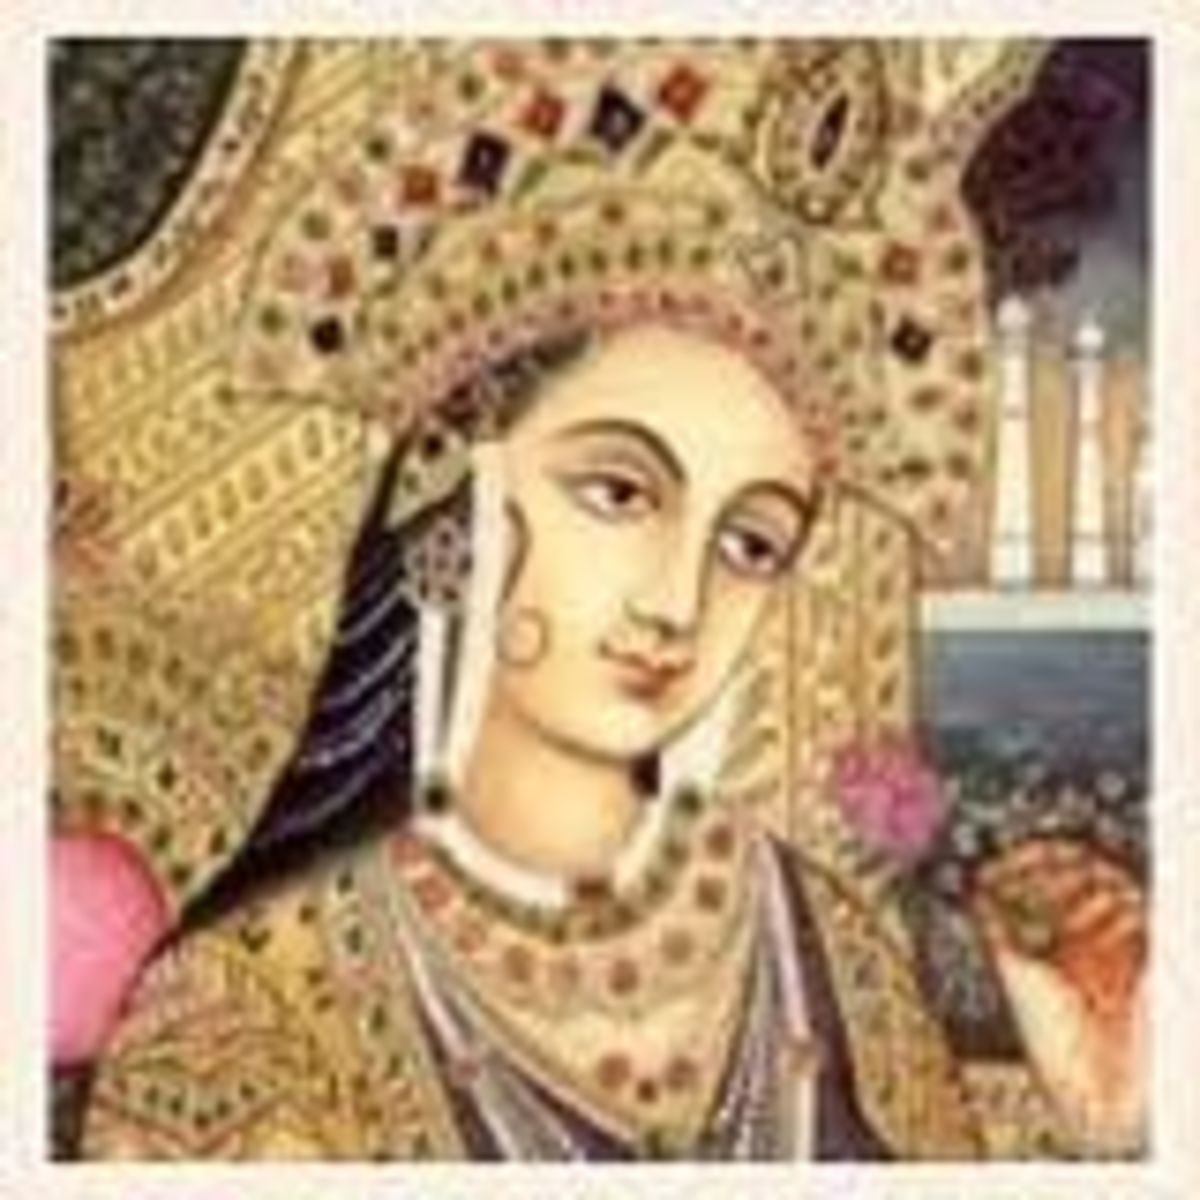 Shah Jahan and Mumtaz Mahal a Legendary Love Story